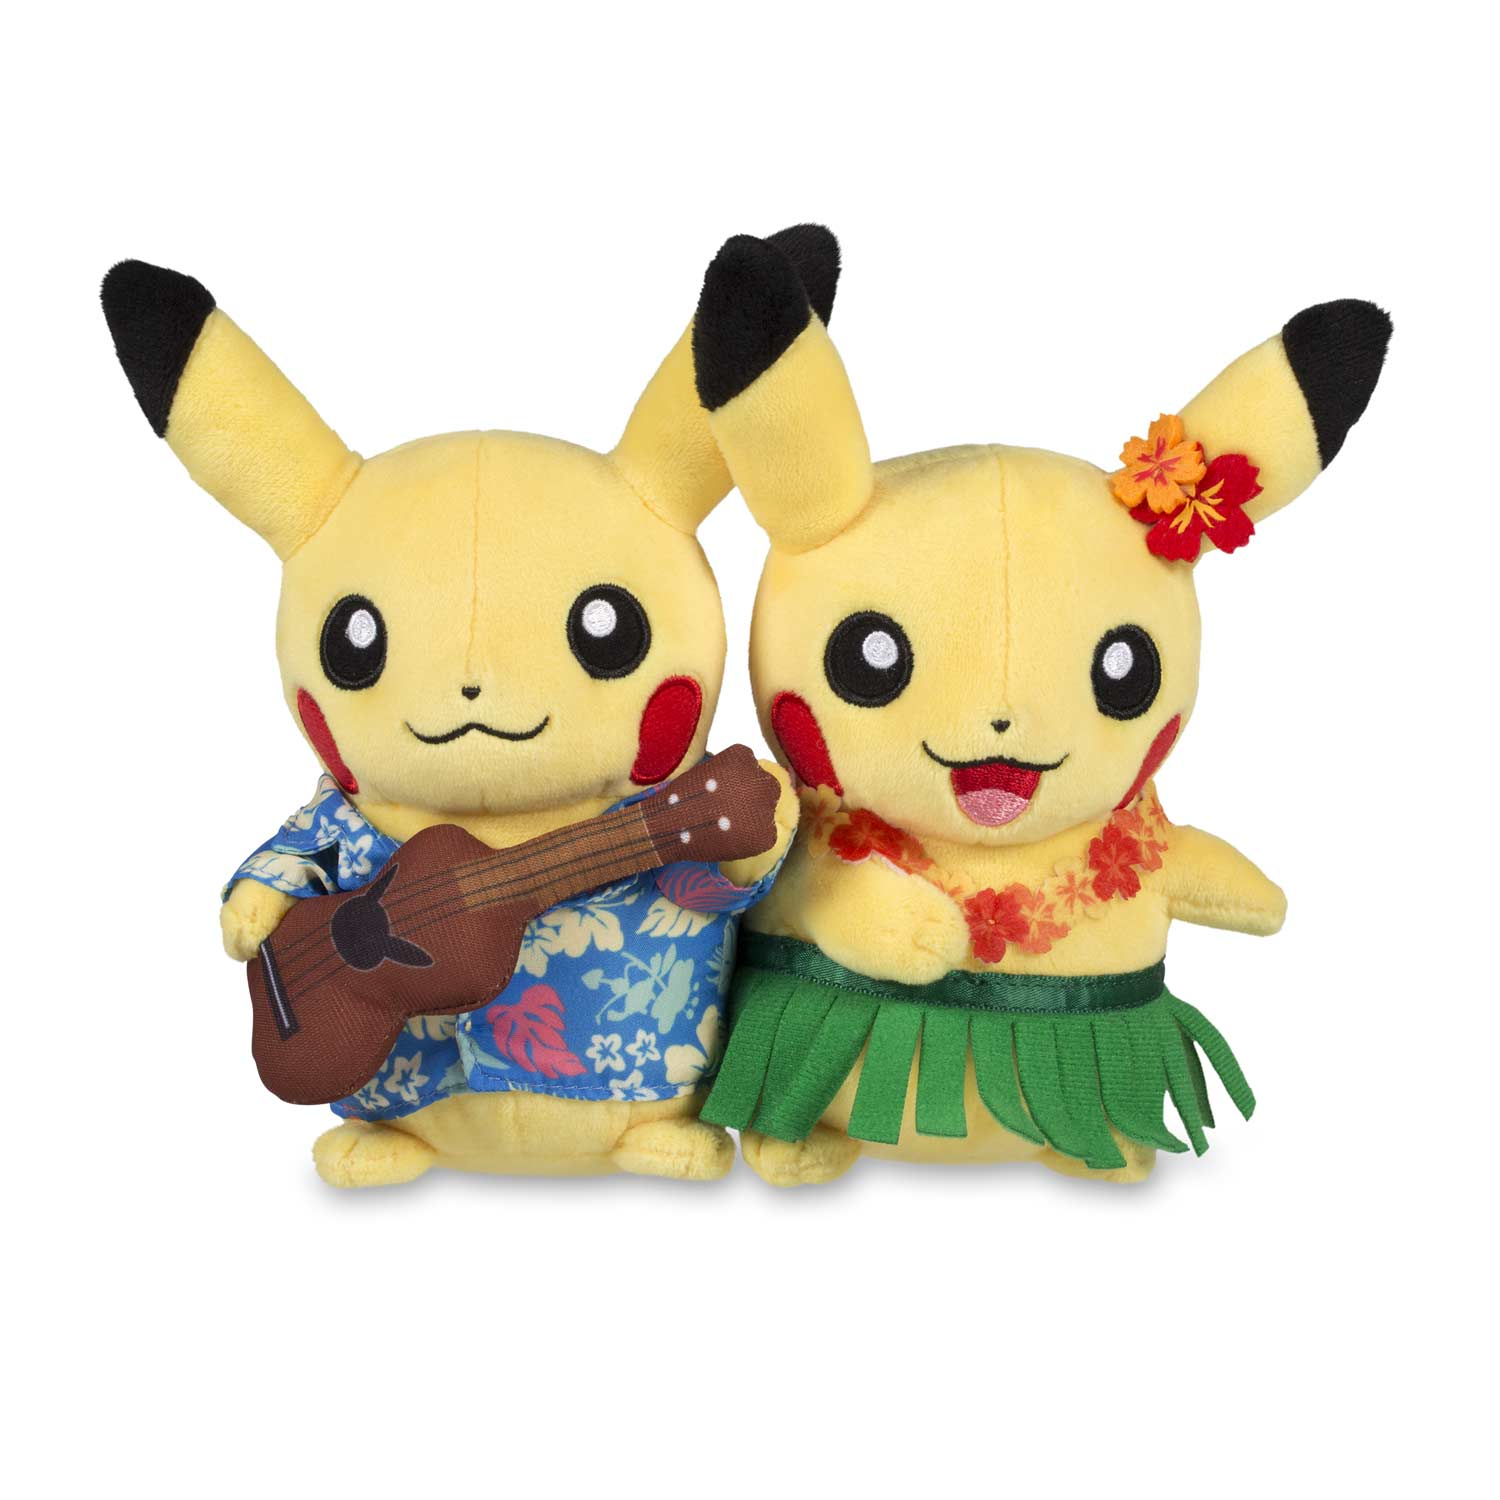 572270a9 Image for Paired Pikachu Celebrations: Hawaiian Pikachu Plush - 8 In. from Pokemon  Center